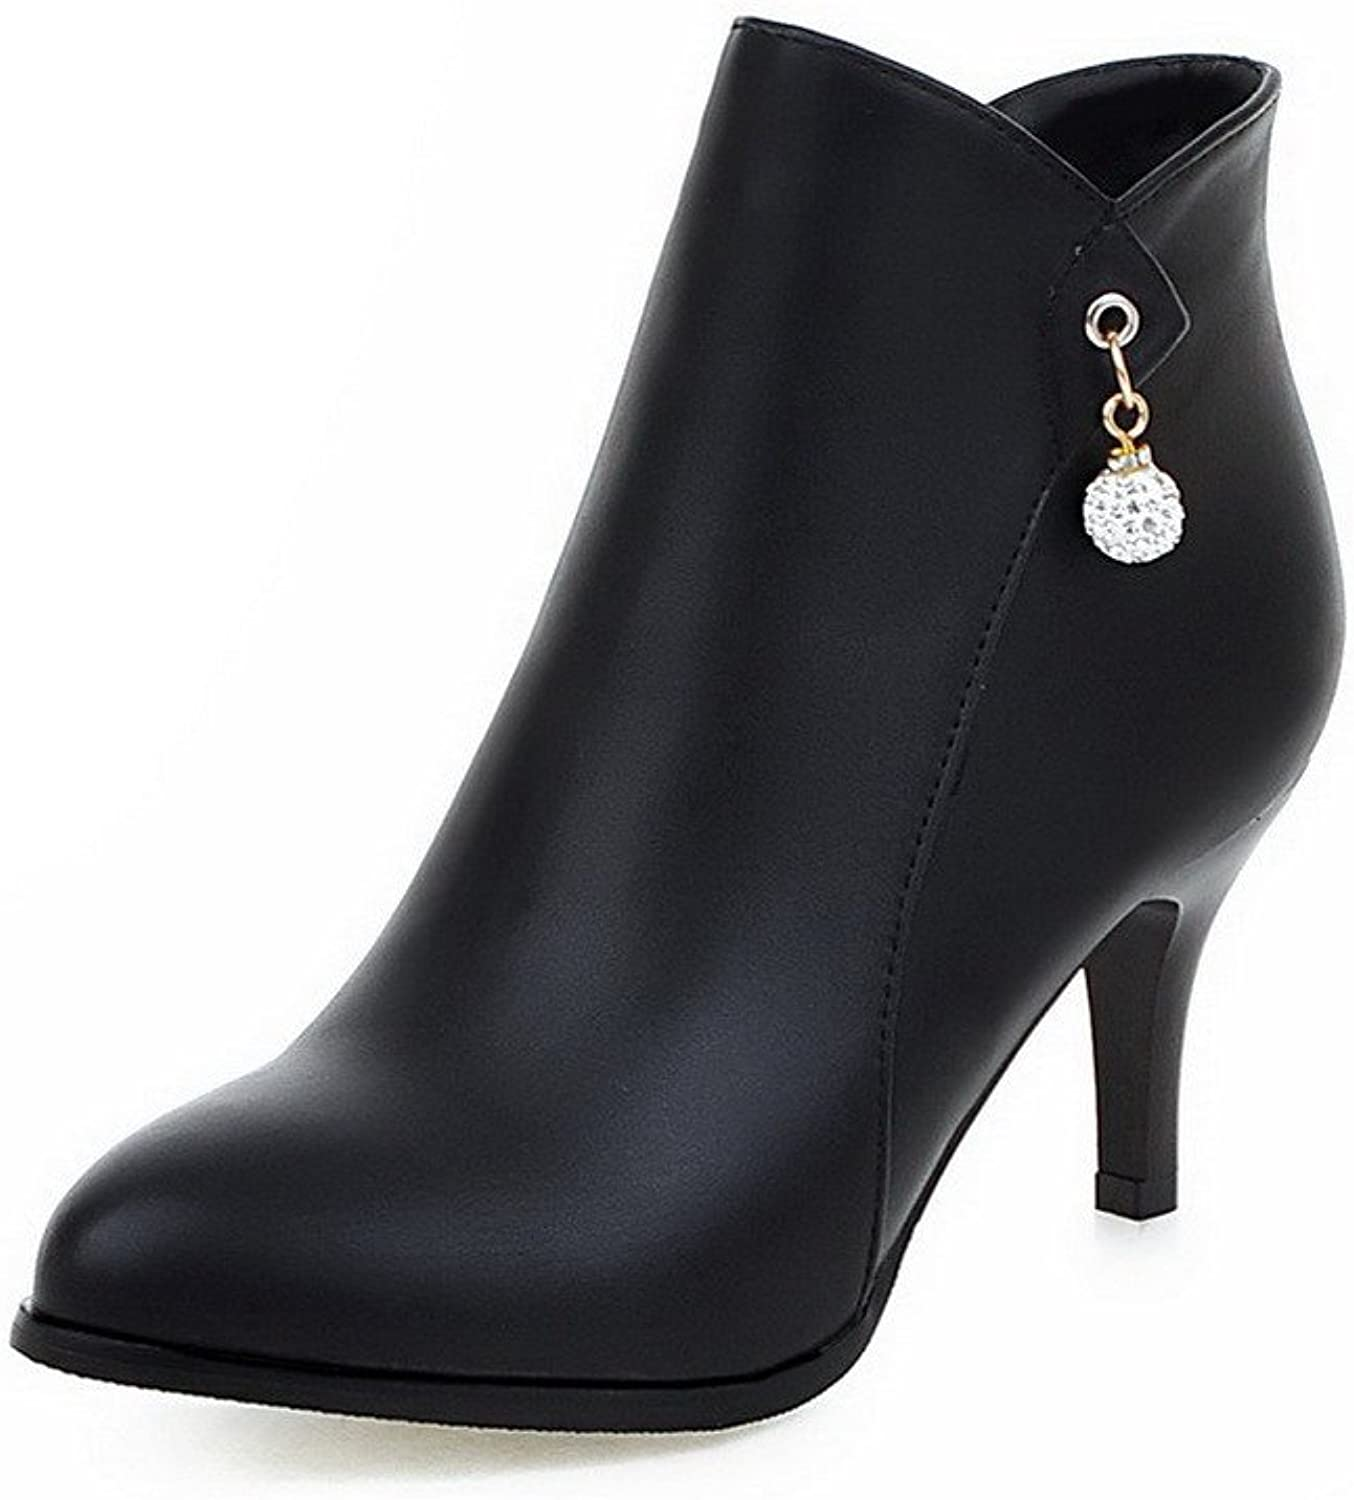 AmoonyFashion Women's High-Heels Soft Material Low-Top Solid Zipper Boots with Charms